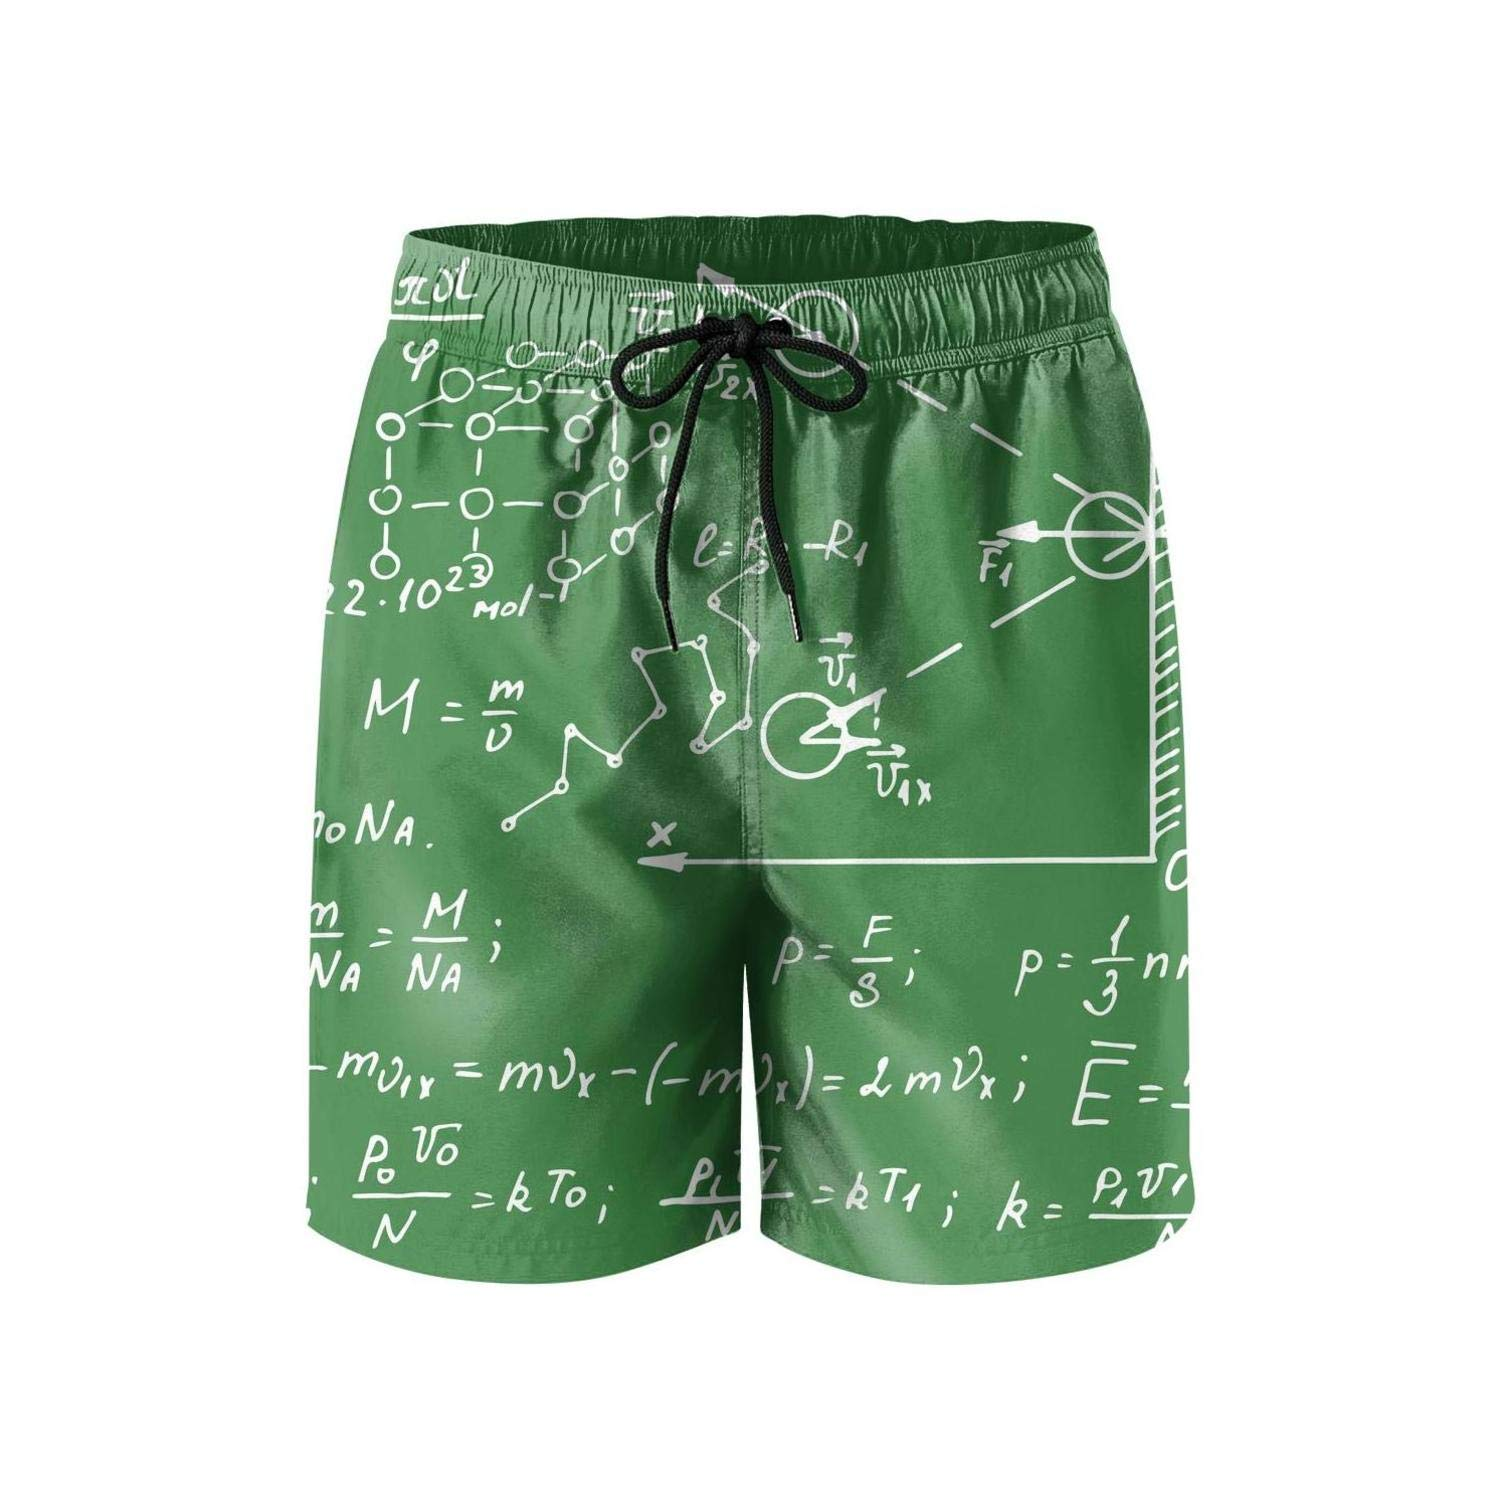 NDKSO3UH Math Equations Science Physical Mens Swim Trunks Quick Dry Beachwear Mesh Lining Beach Board Shorts with Drawstring